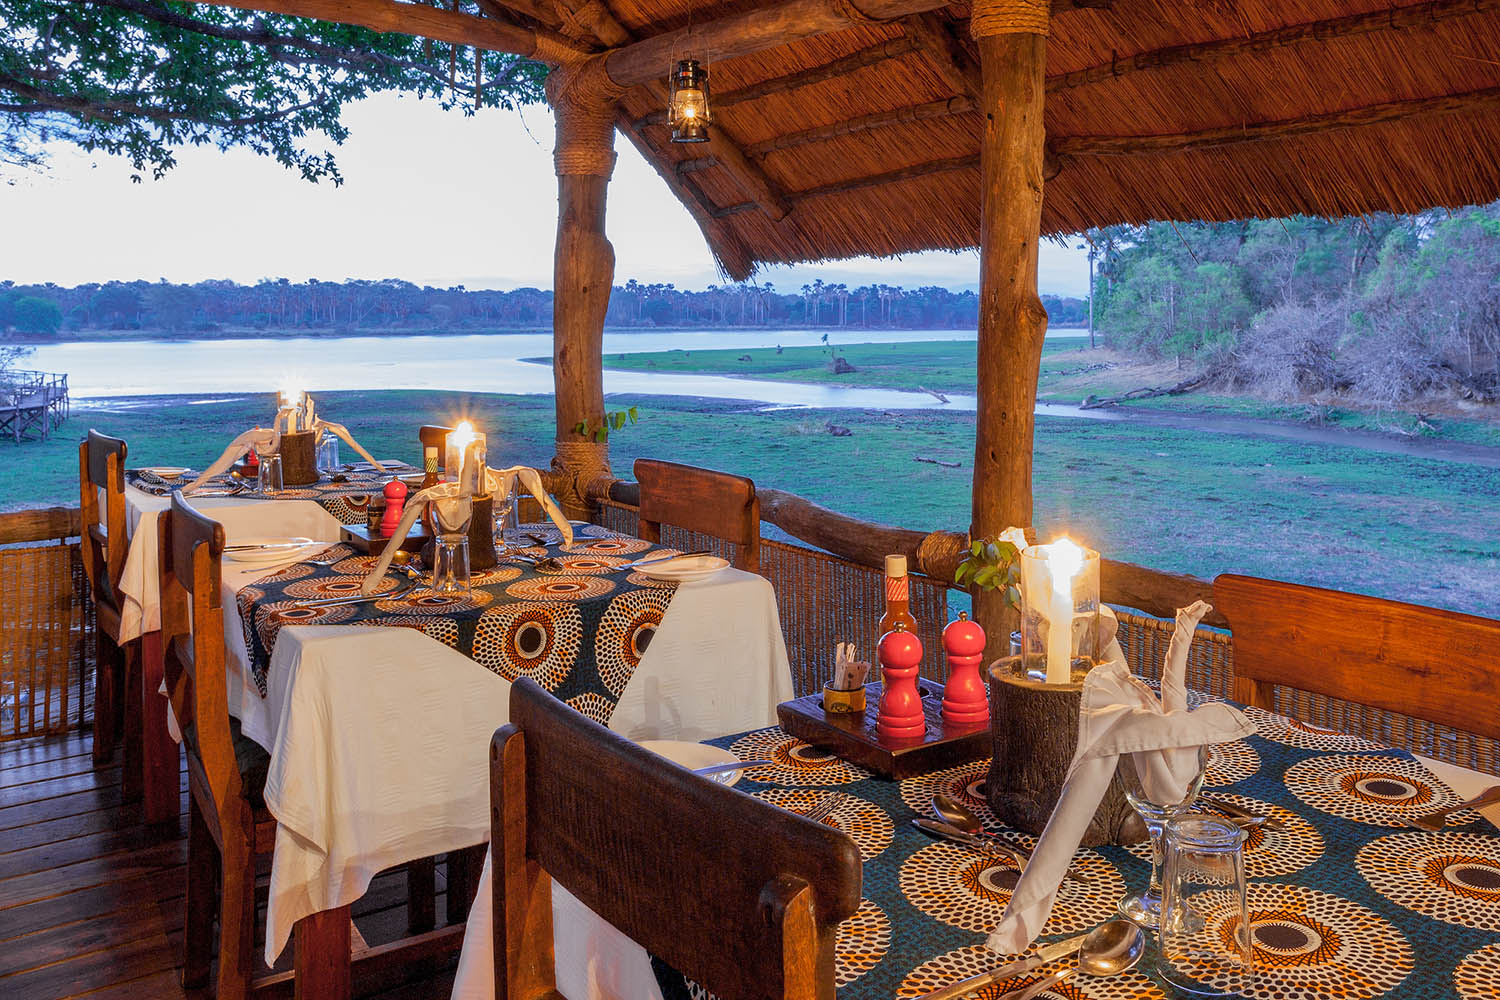 southern-adventurer-11-nights-tours-safaris-malawian-style-malawi-adventures-experiences-holidays-specialist-tour-operator-mvuu-camp-liwonde-national-park-dining-area